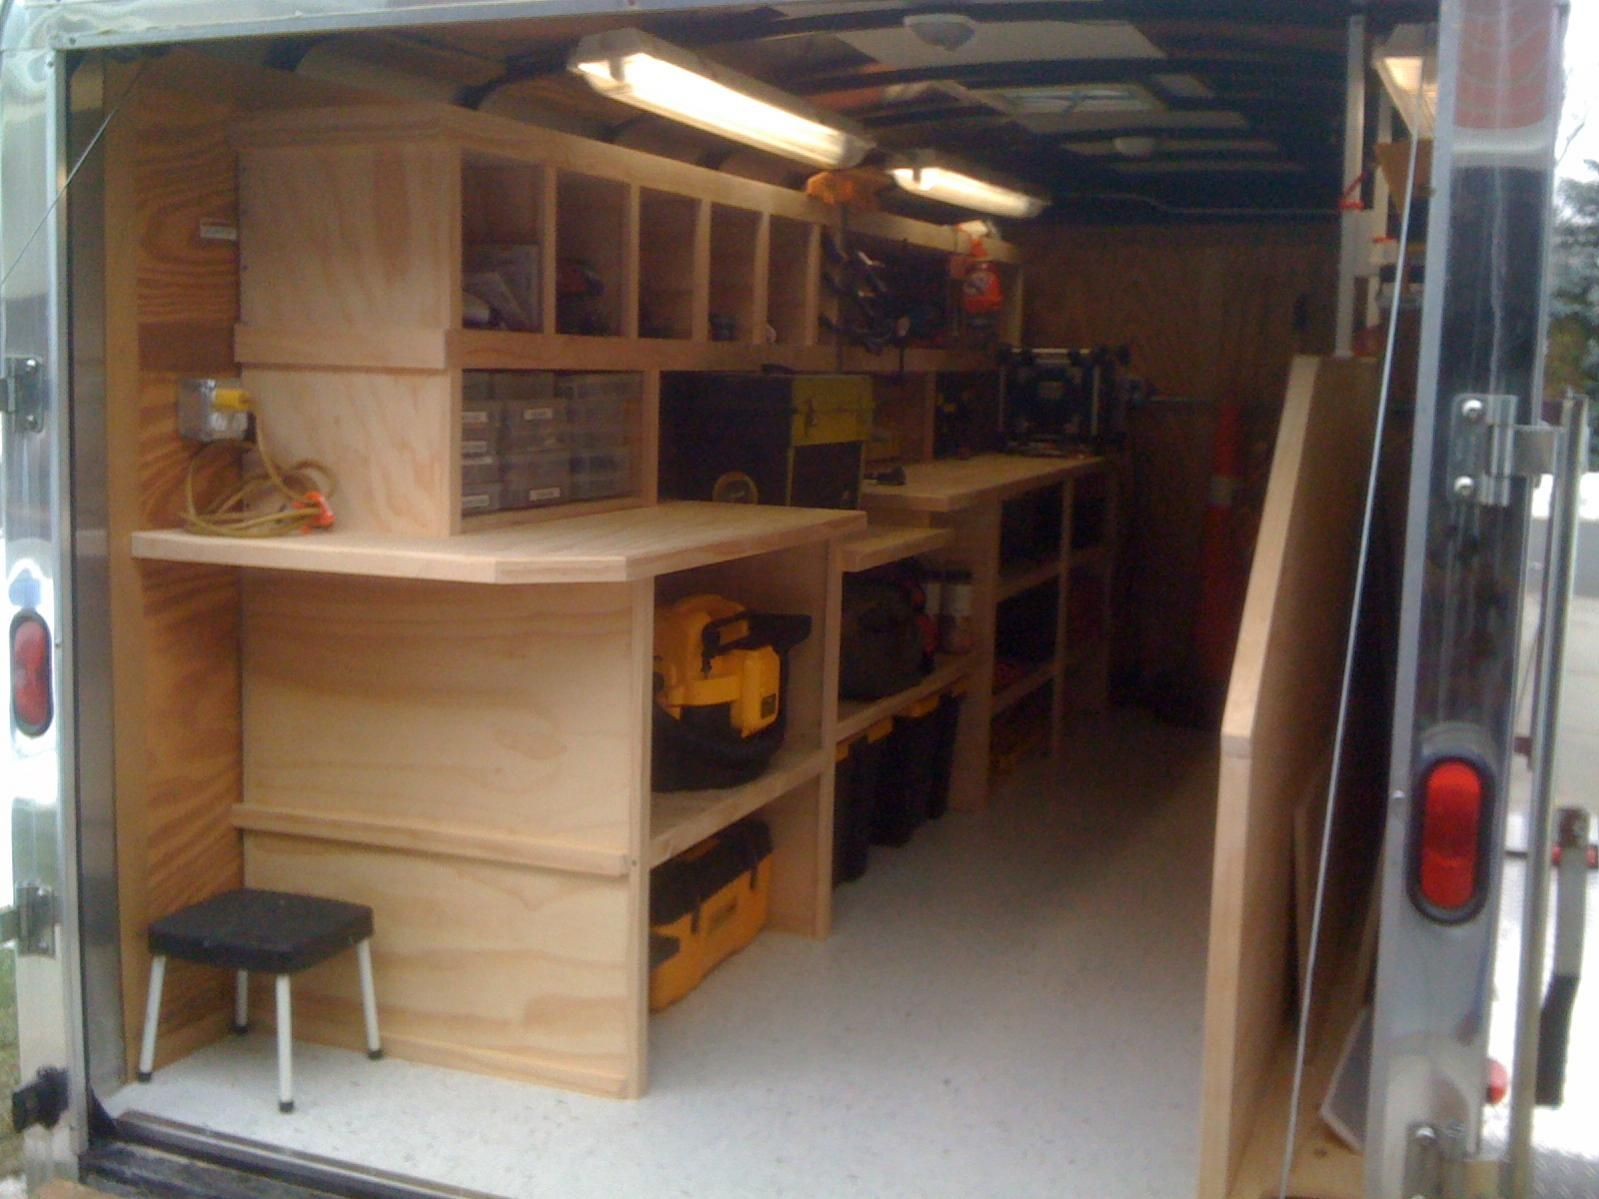 Contractor Tool Trailer Setup | thank you everyone for the ideas for ...